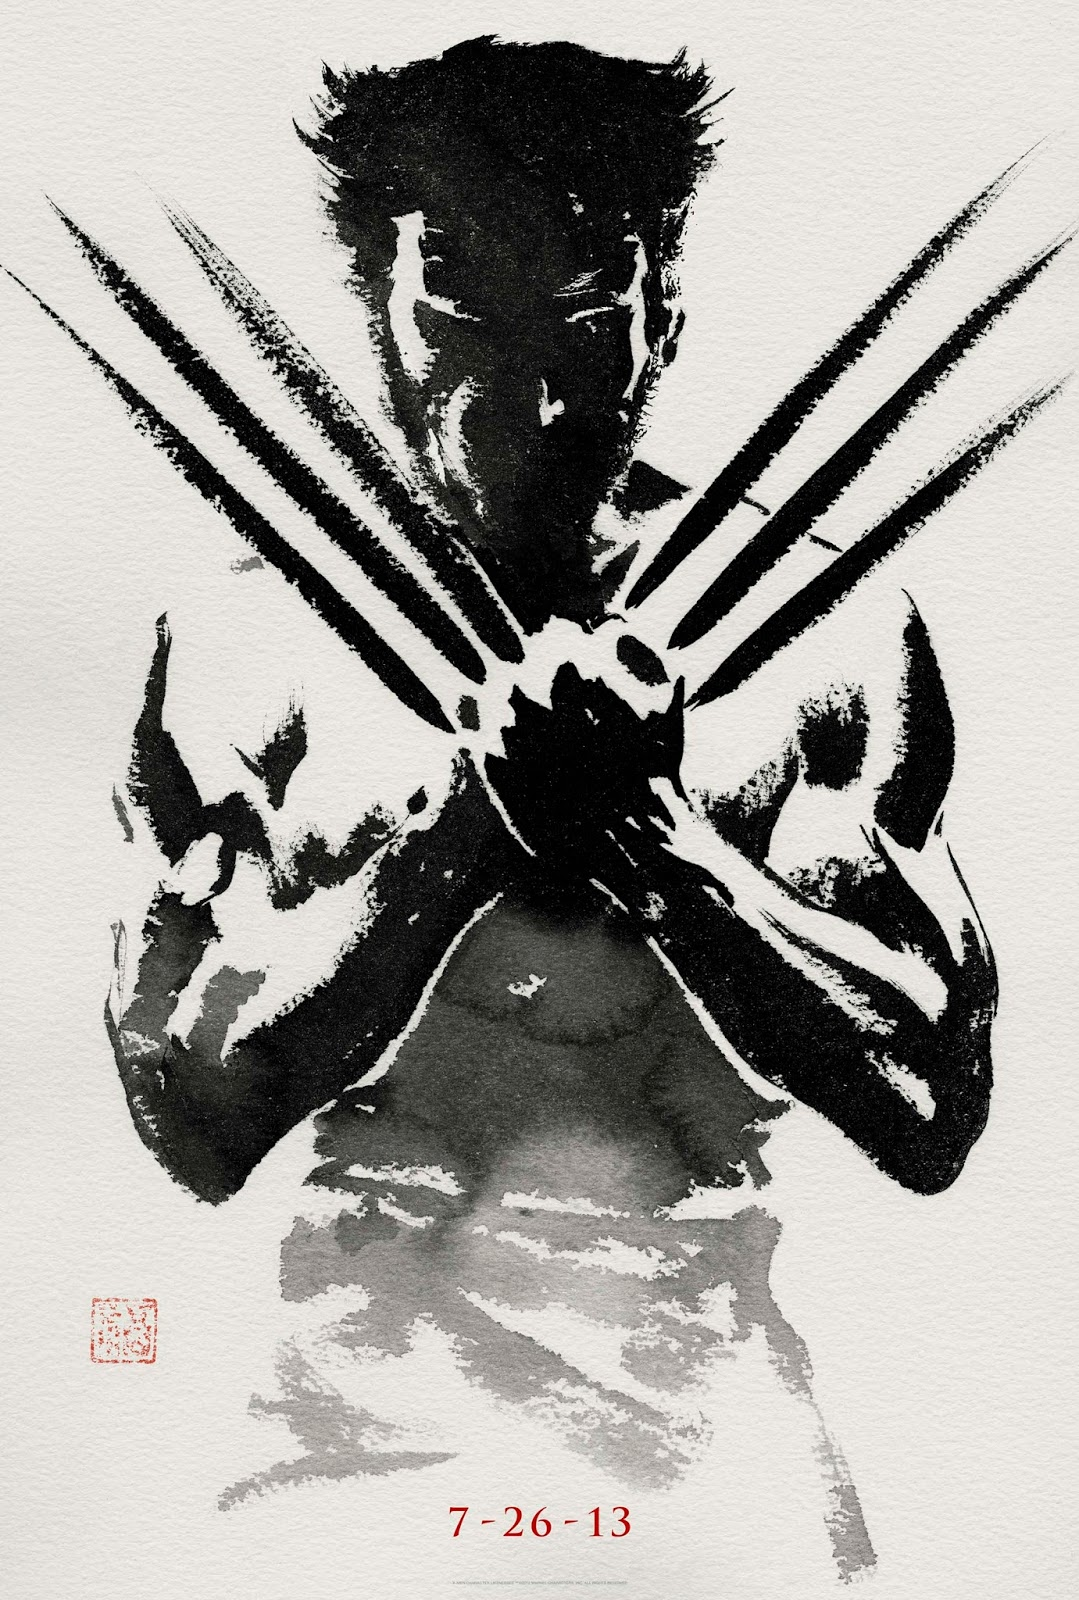 Pat Jackson's Podium: The Wolverine (2013)